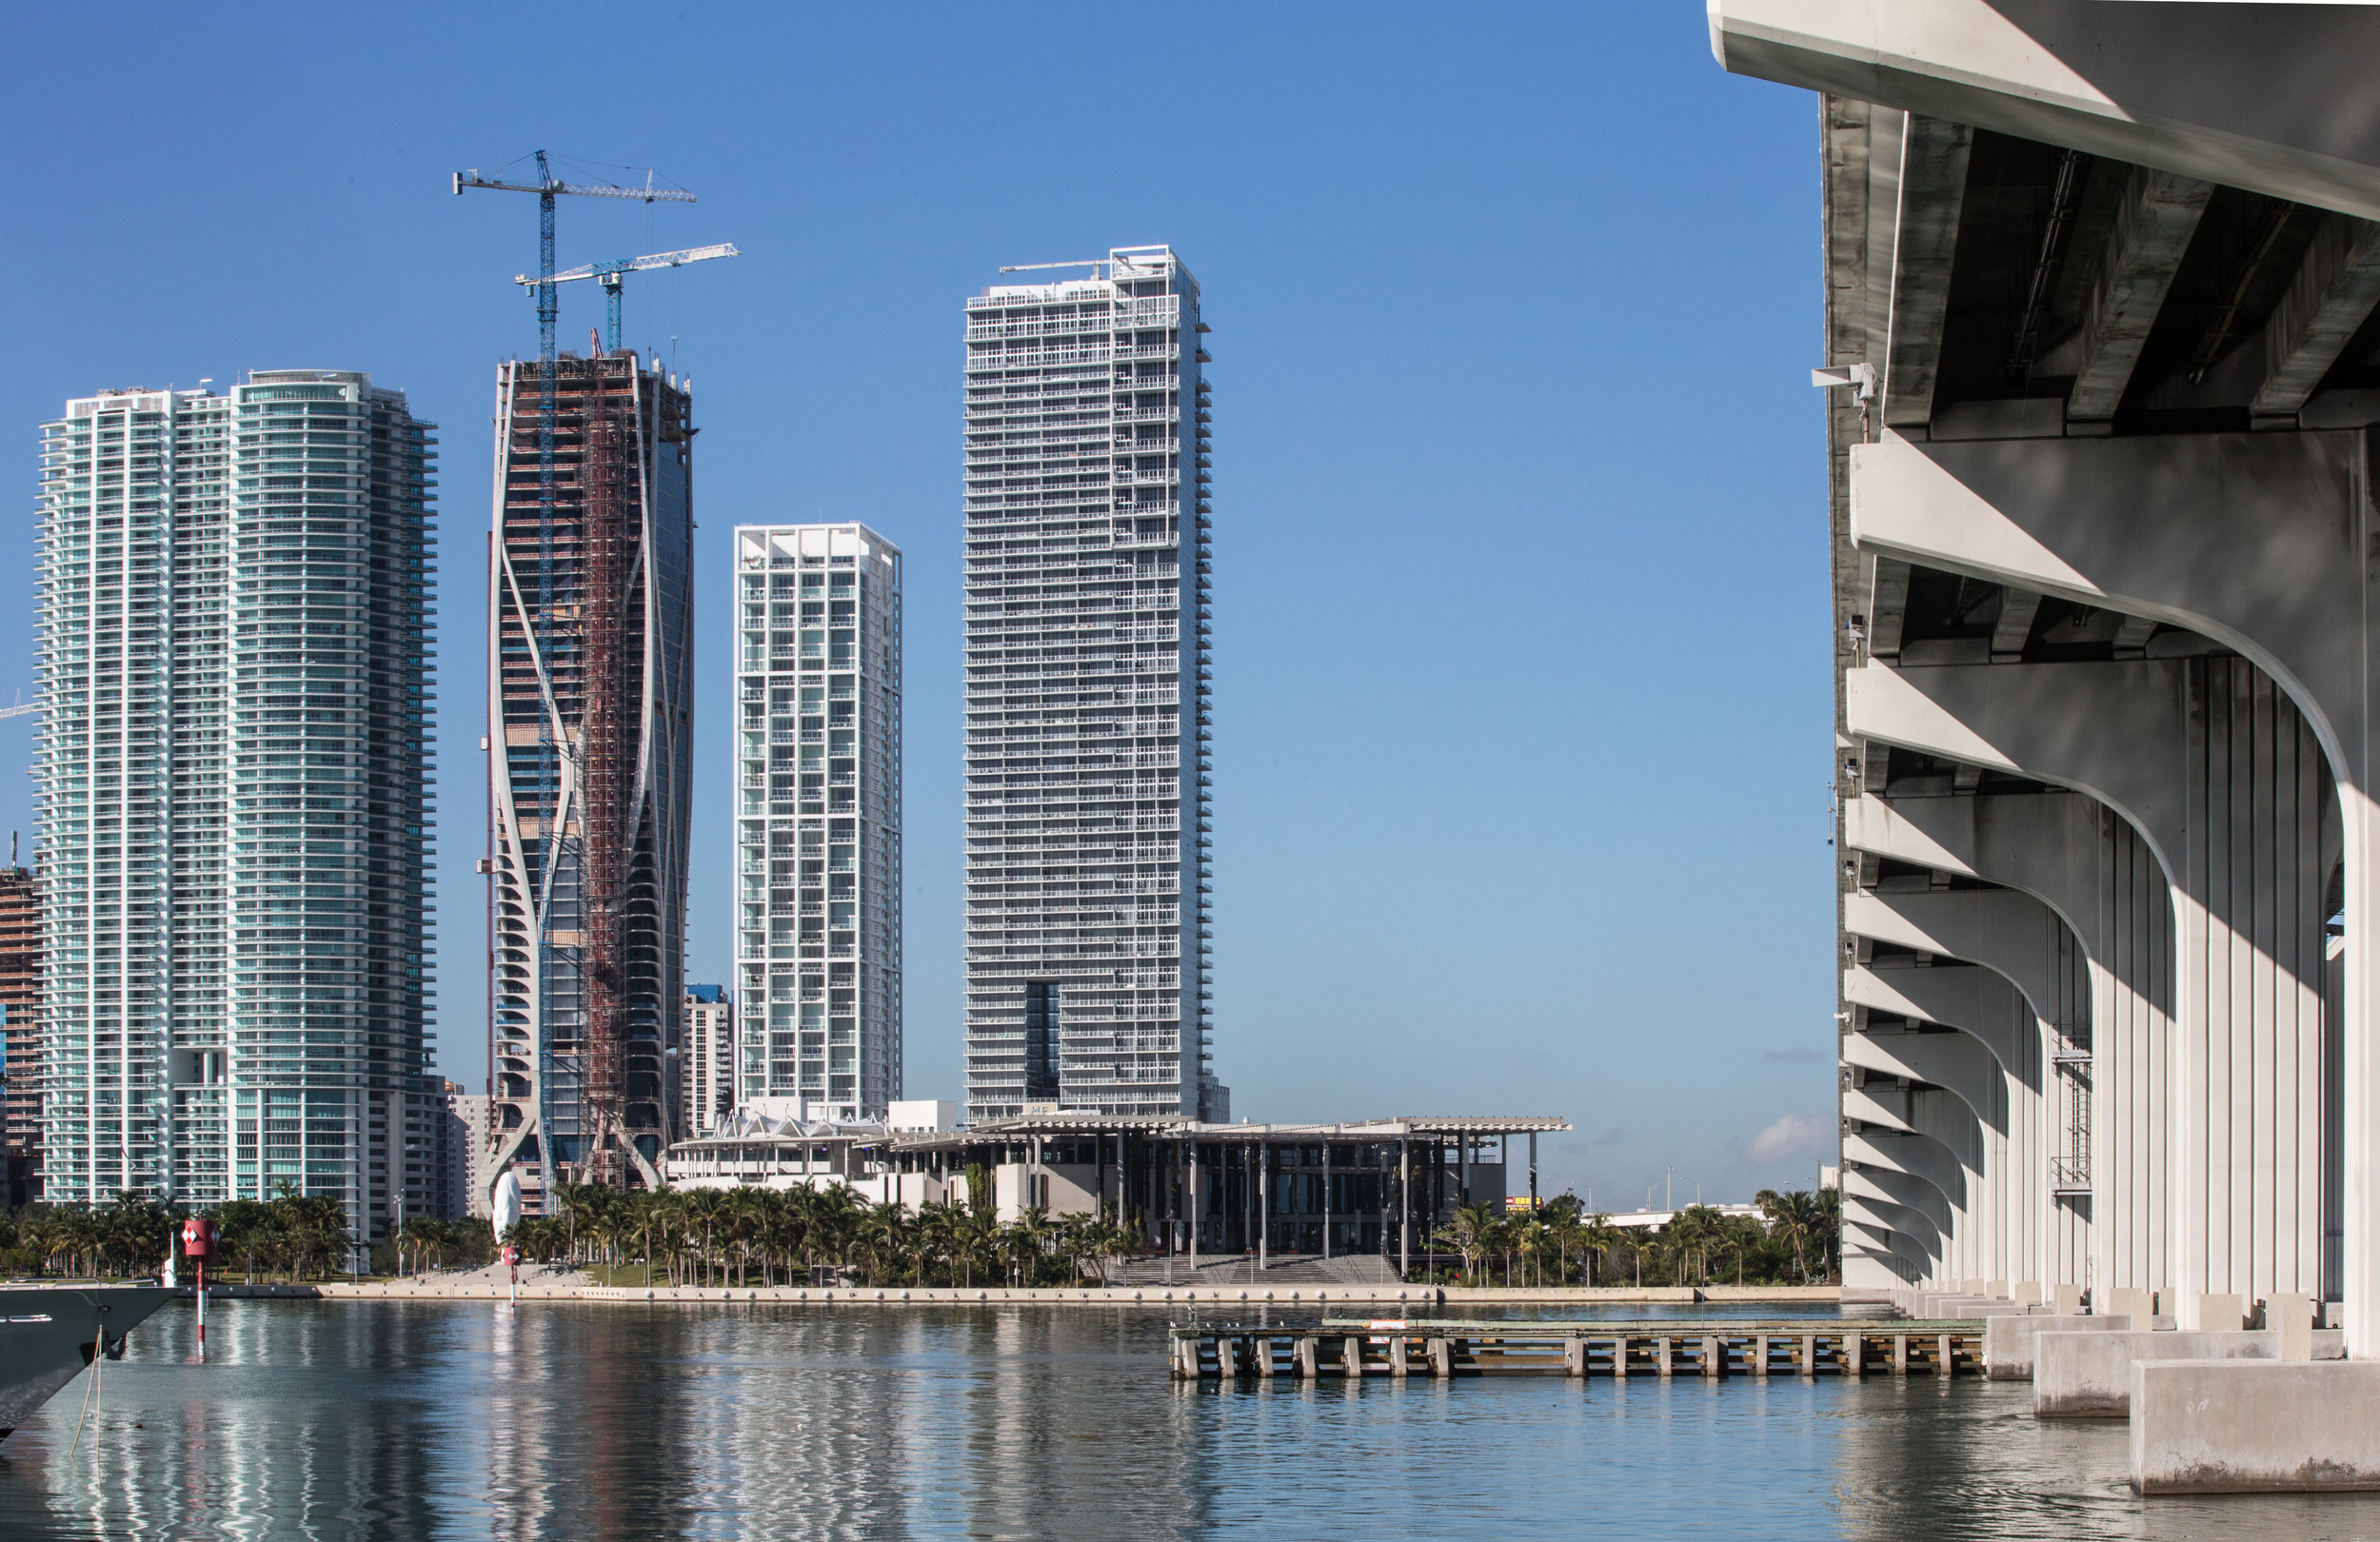 ISG Report Finds New Construction Condos In Miami East Of I-95 Are 83% Sold Out